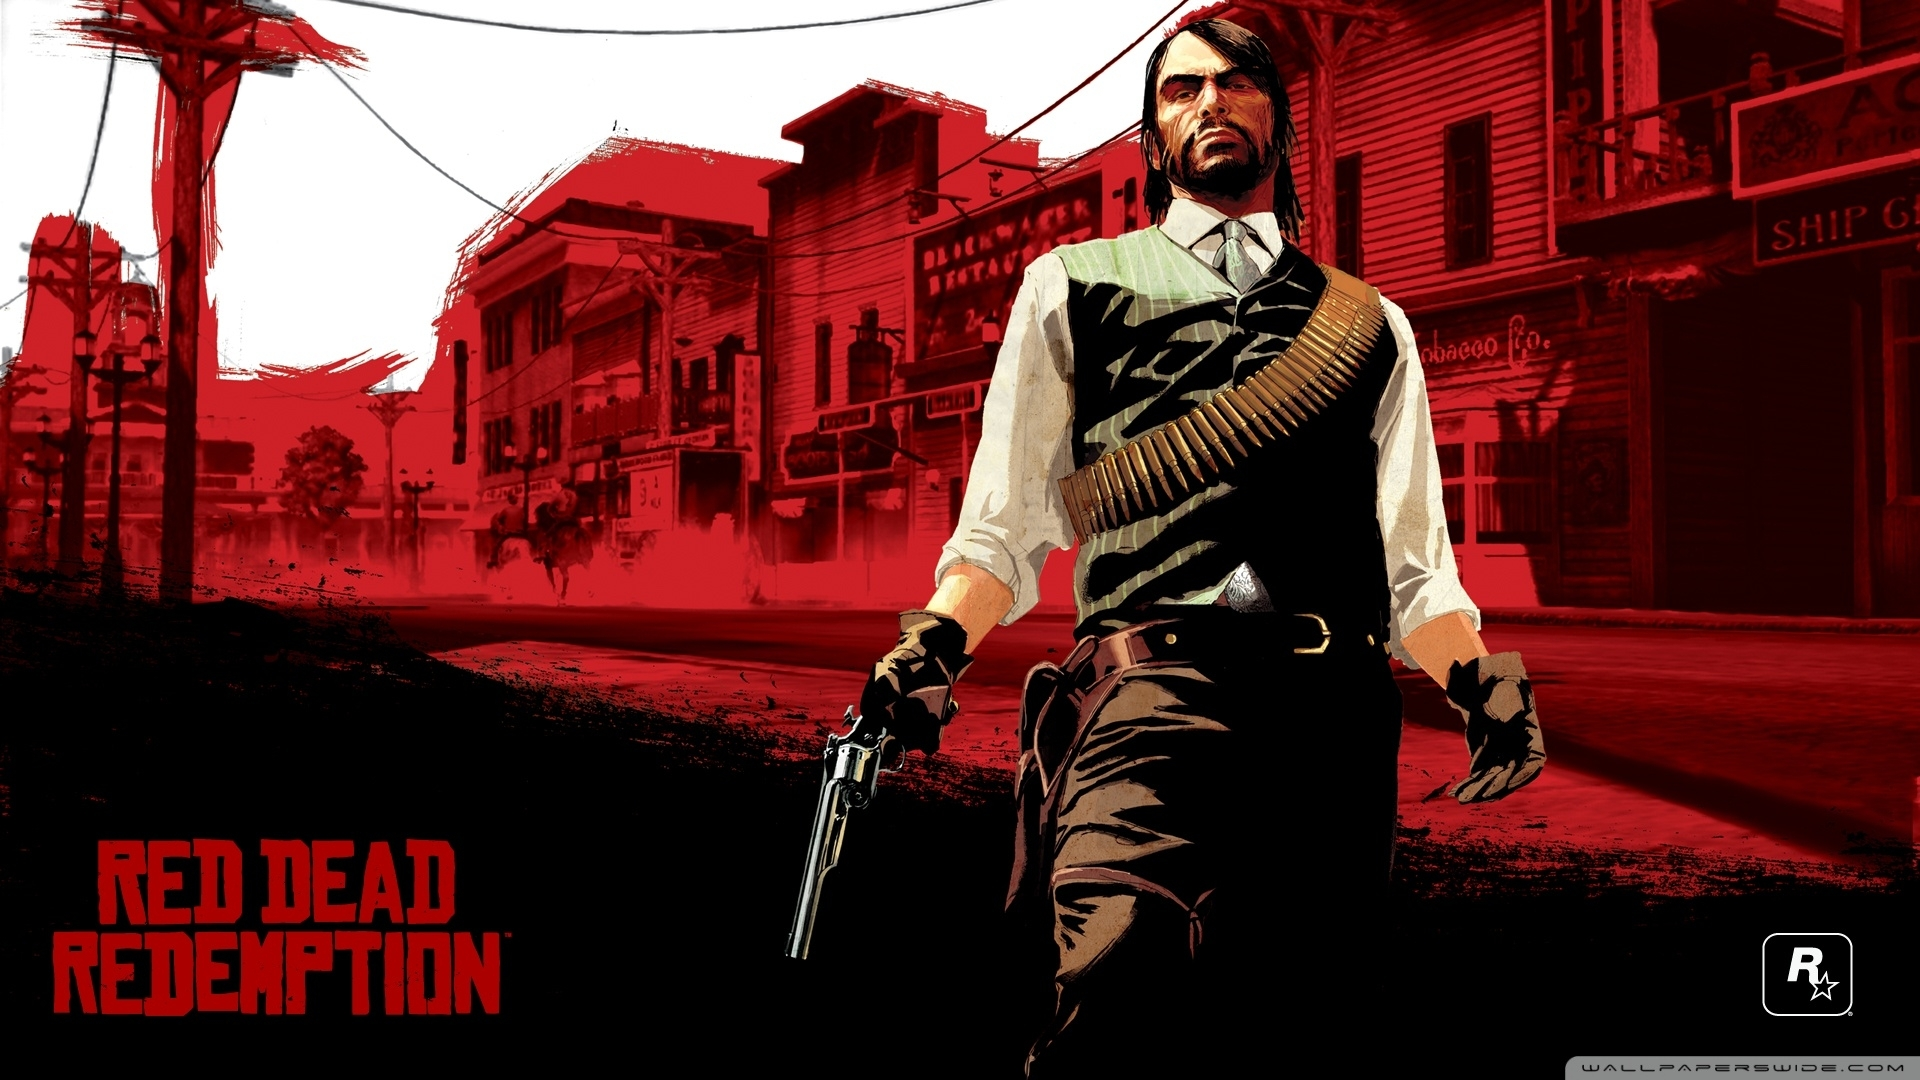 red dead redemption, marston ❤ 4k hd desktop wallpaper for 4k ultra